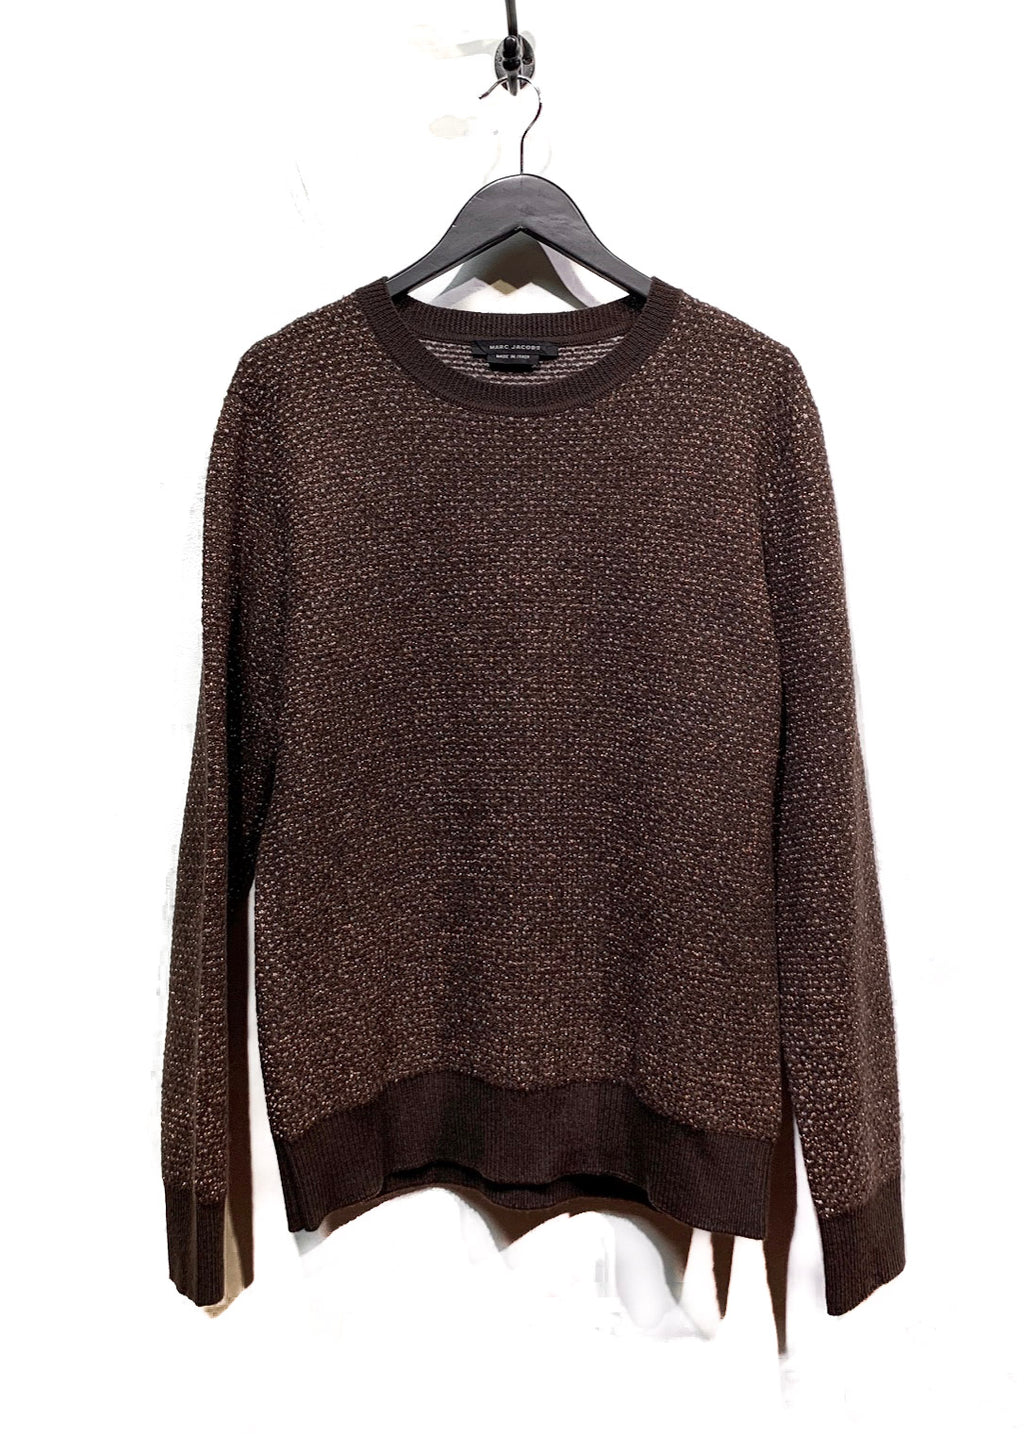 Marc Jacobs Brown Lurex Wool Knit Sweater